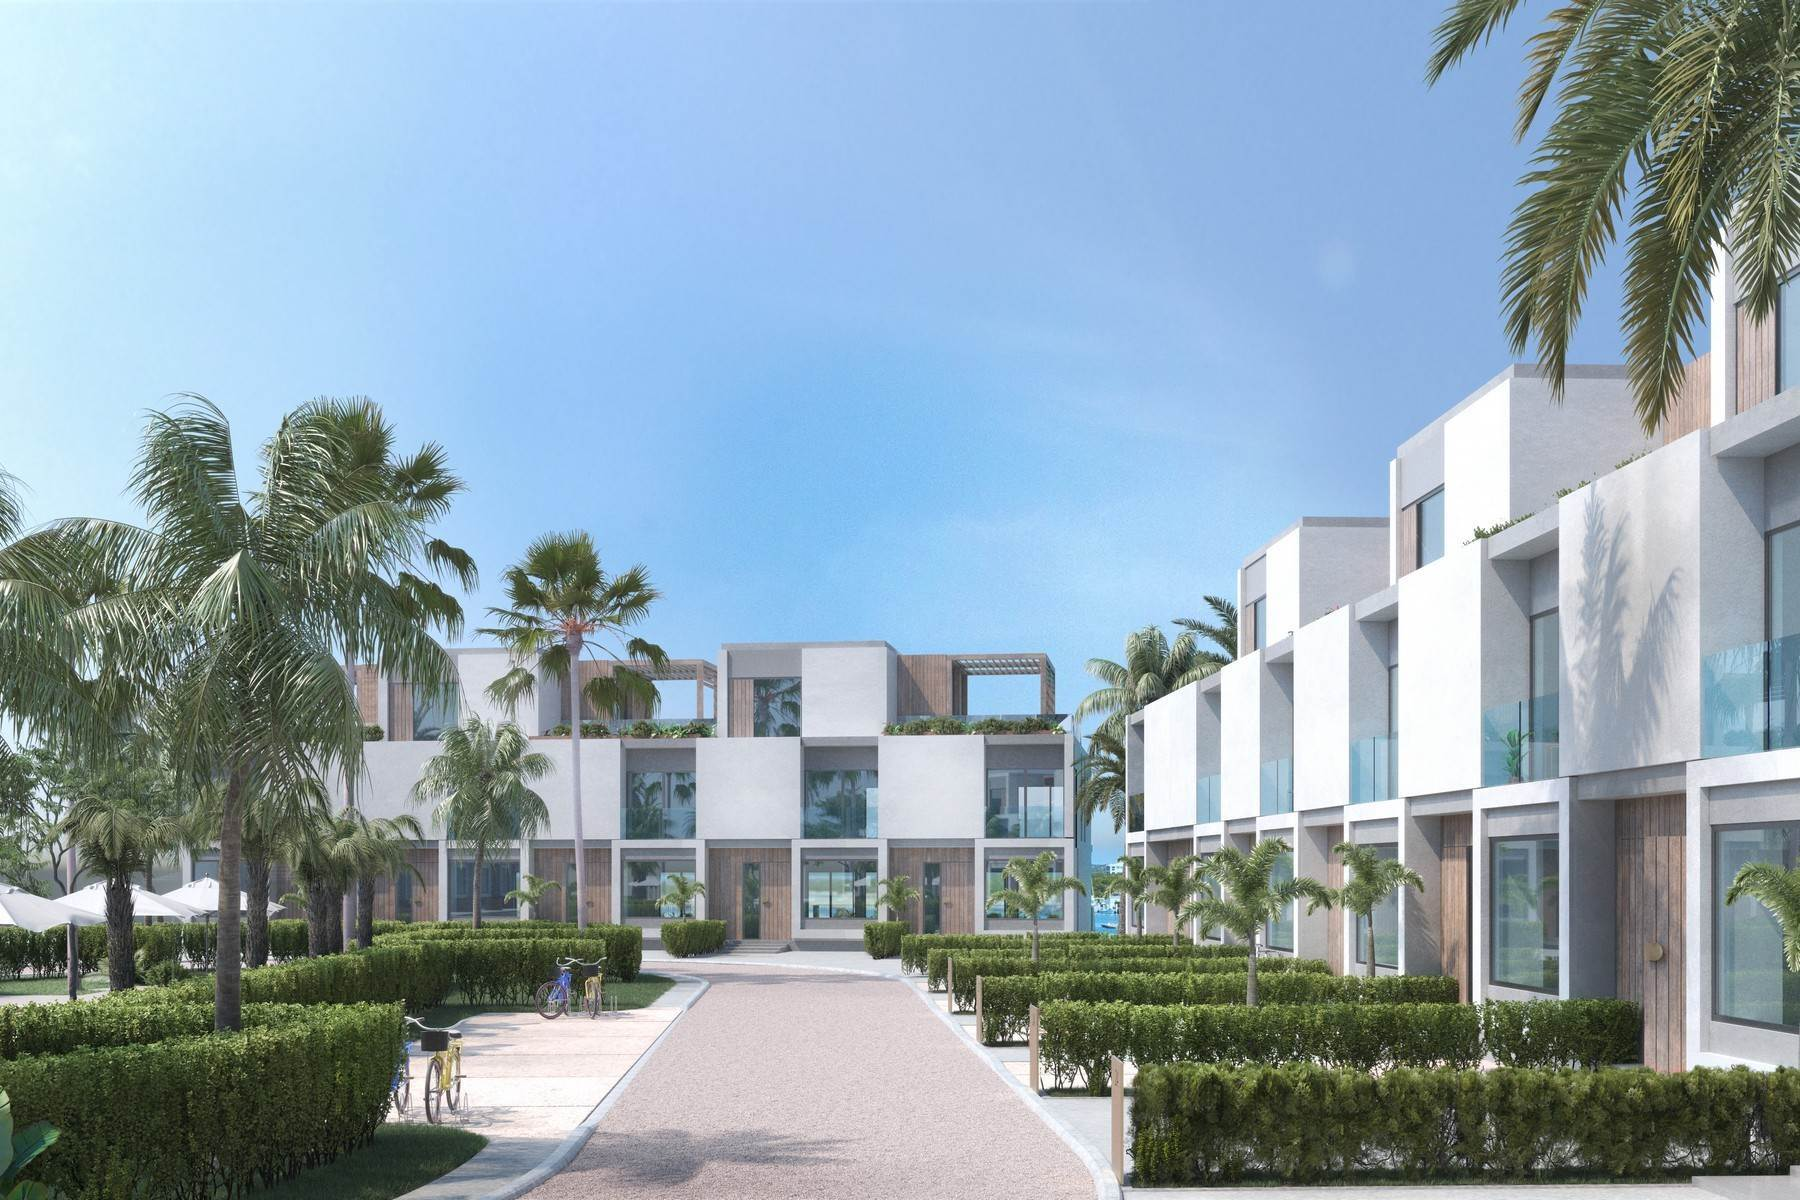 12. Condominiums for Sale at SOUTH BANK - BOATHOUSES - TWO BEDROOM PLUS ROOFTOP TERRACE - E1 South Bank, Long Bay, Providenciales Turks And Caicos Islands